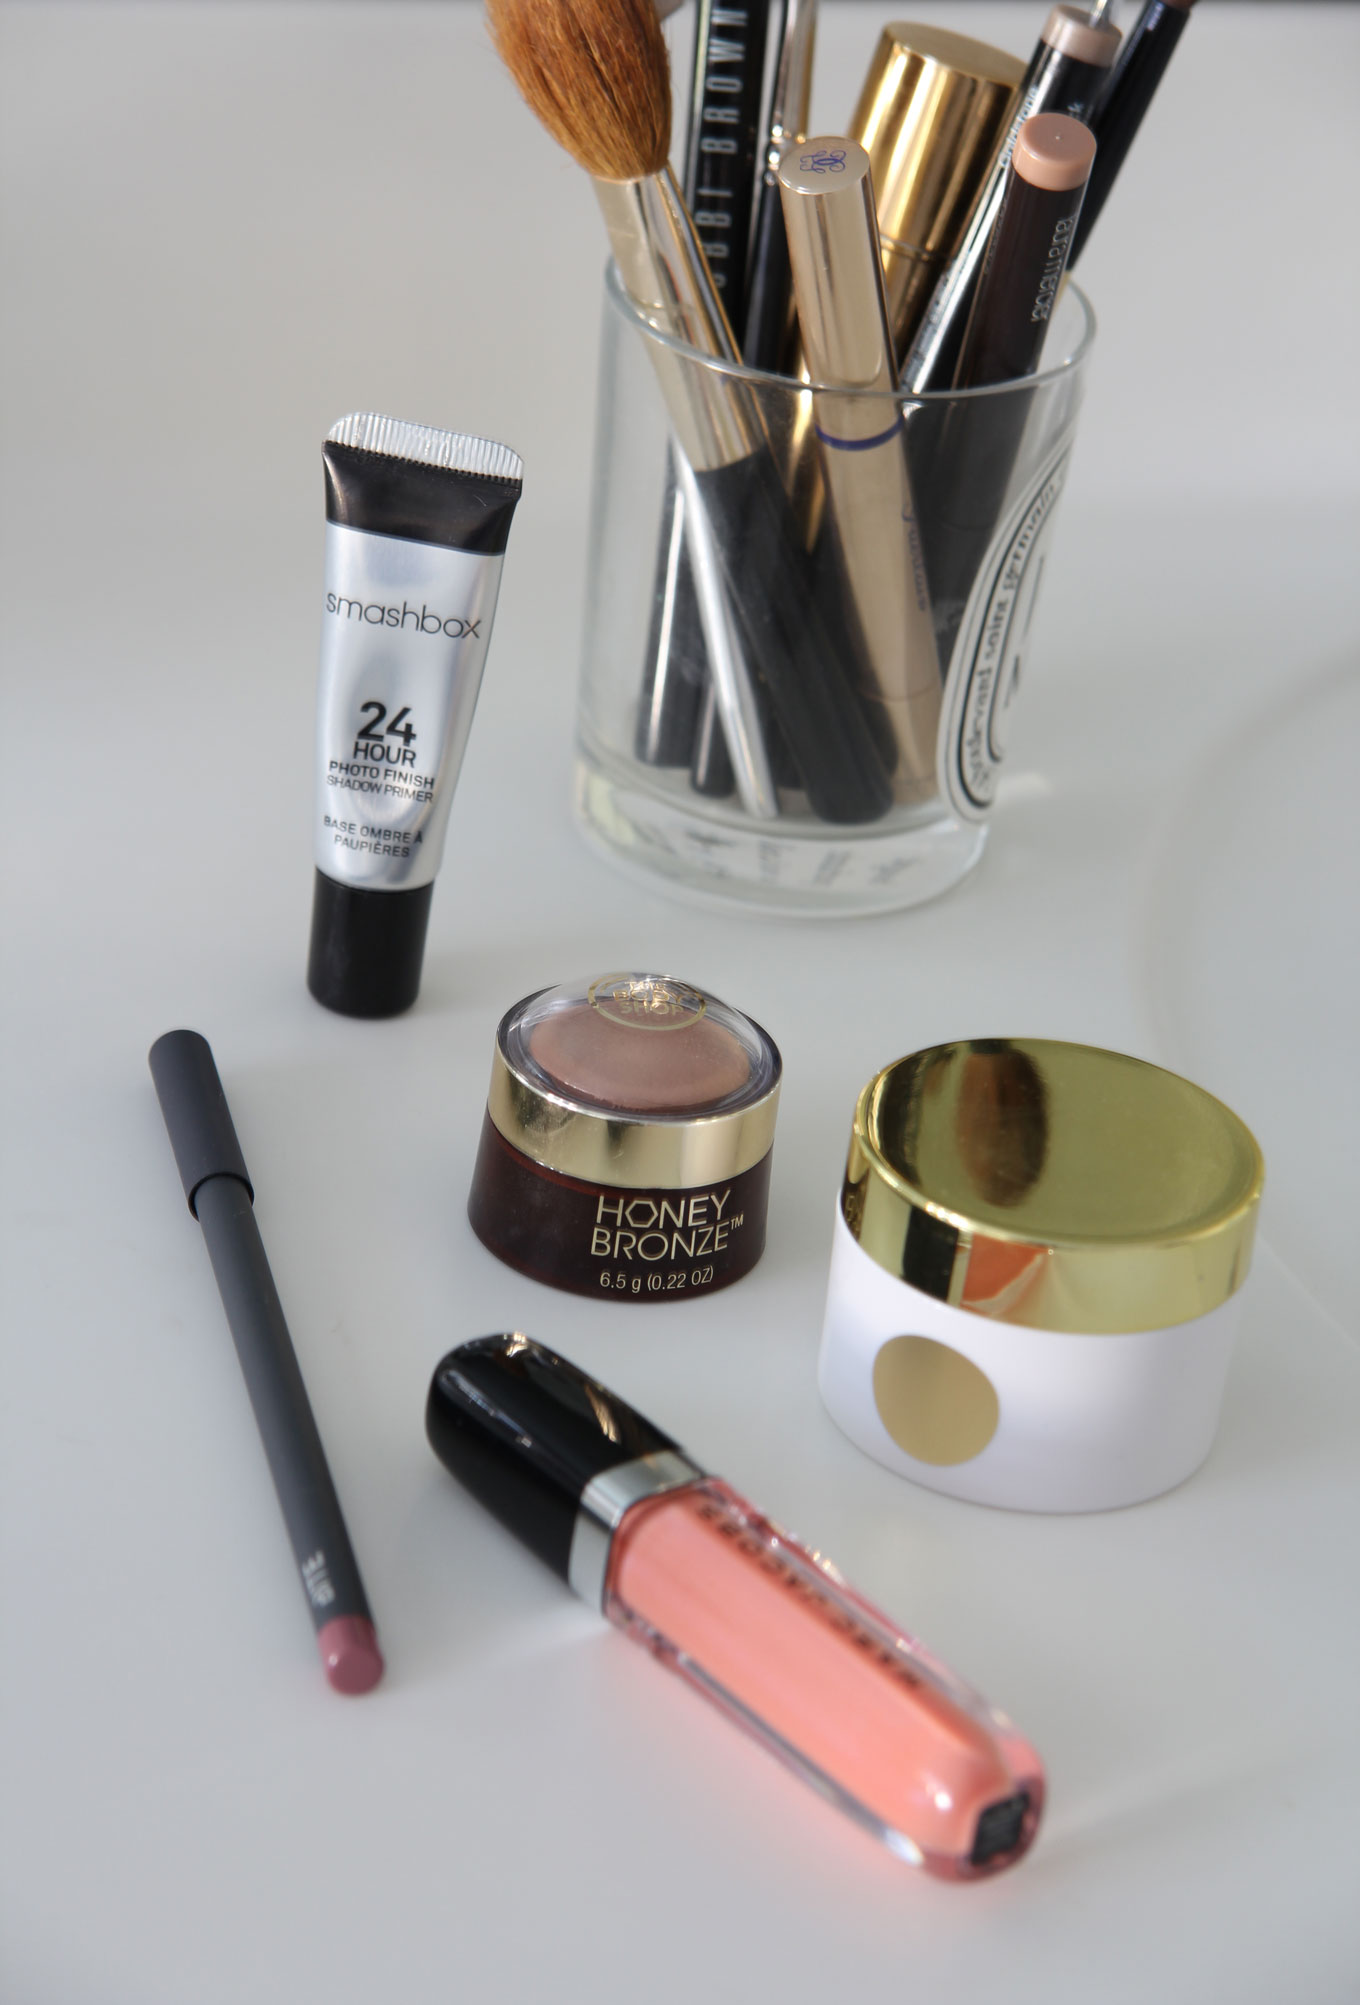 Ridgely Brode shares 5 things from her beauty bag this month, including two lip products and a great highlighter on her blog Ridgely's Radar.